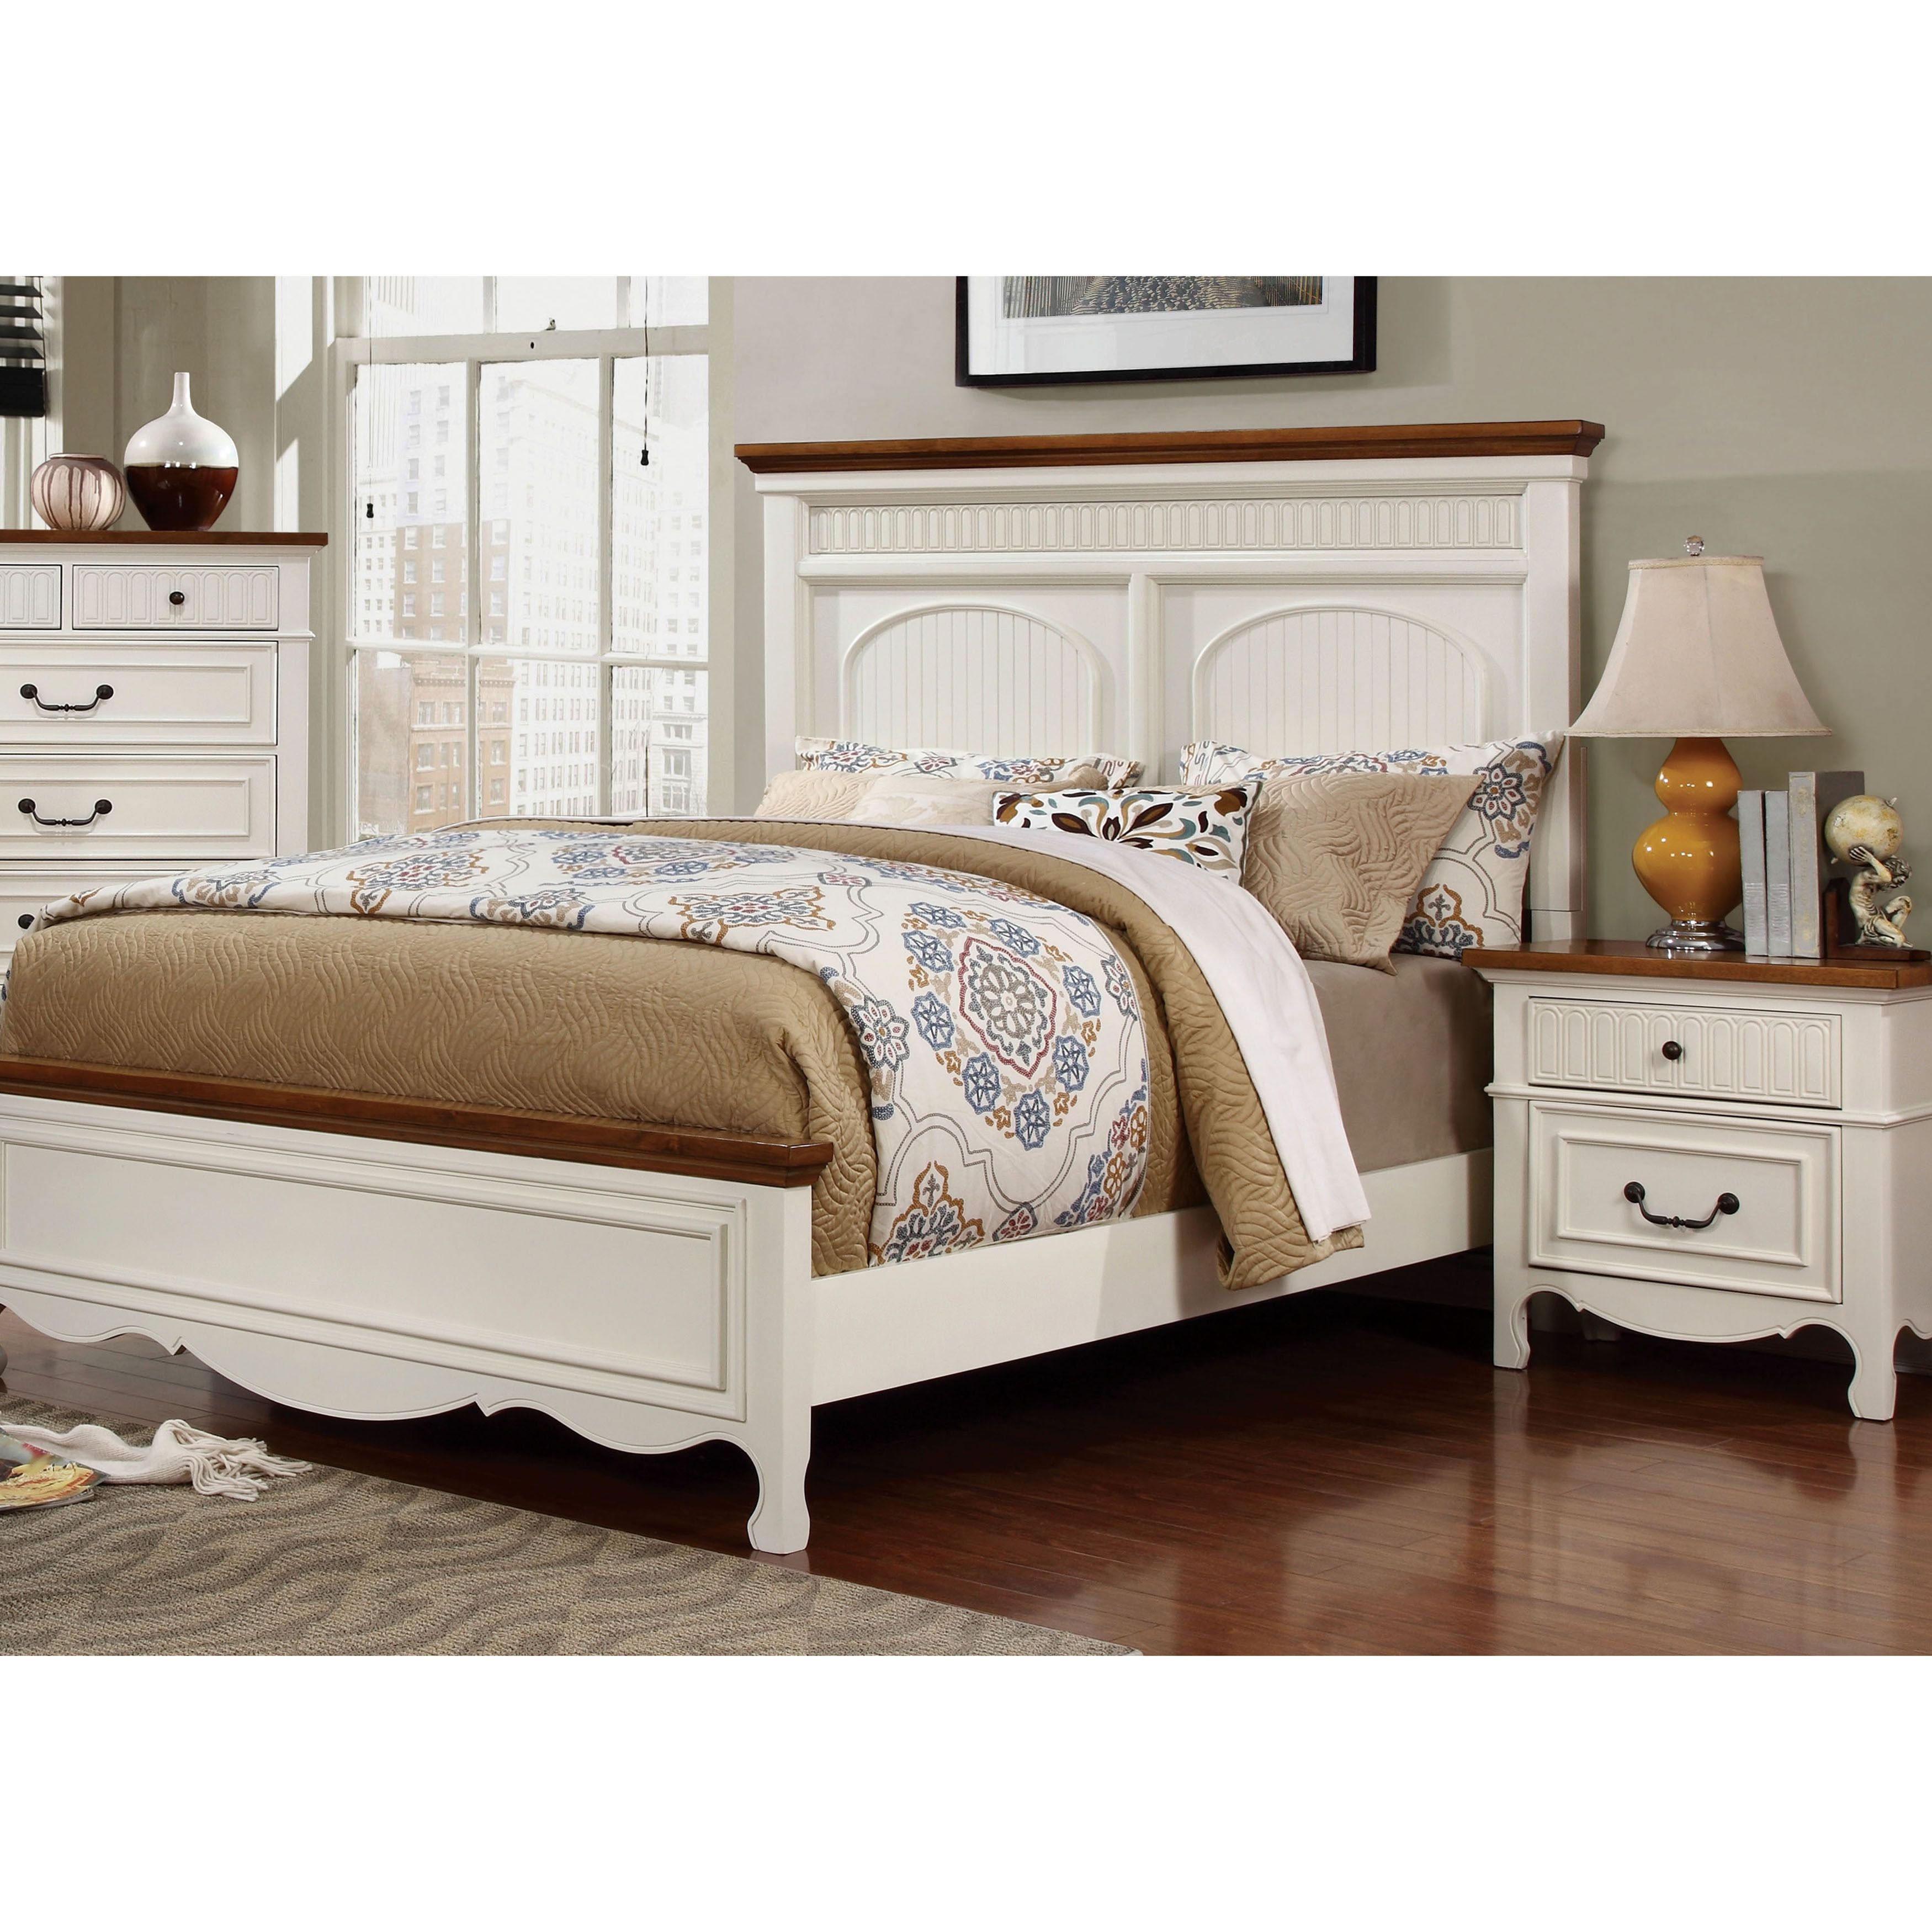 Best This Sweet And Simple Platform Bed And Nightstand Set Is 400 x 300